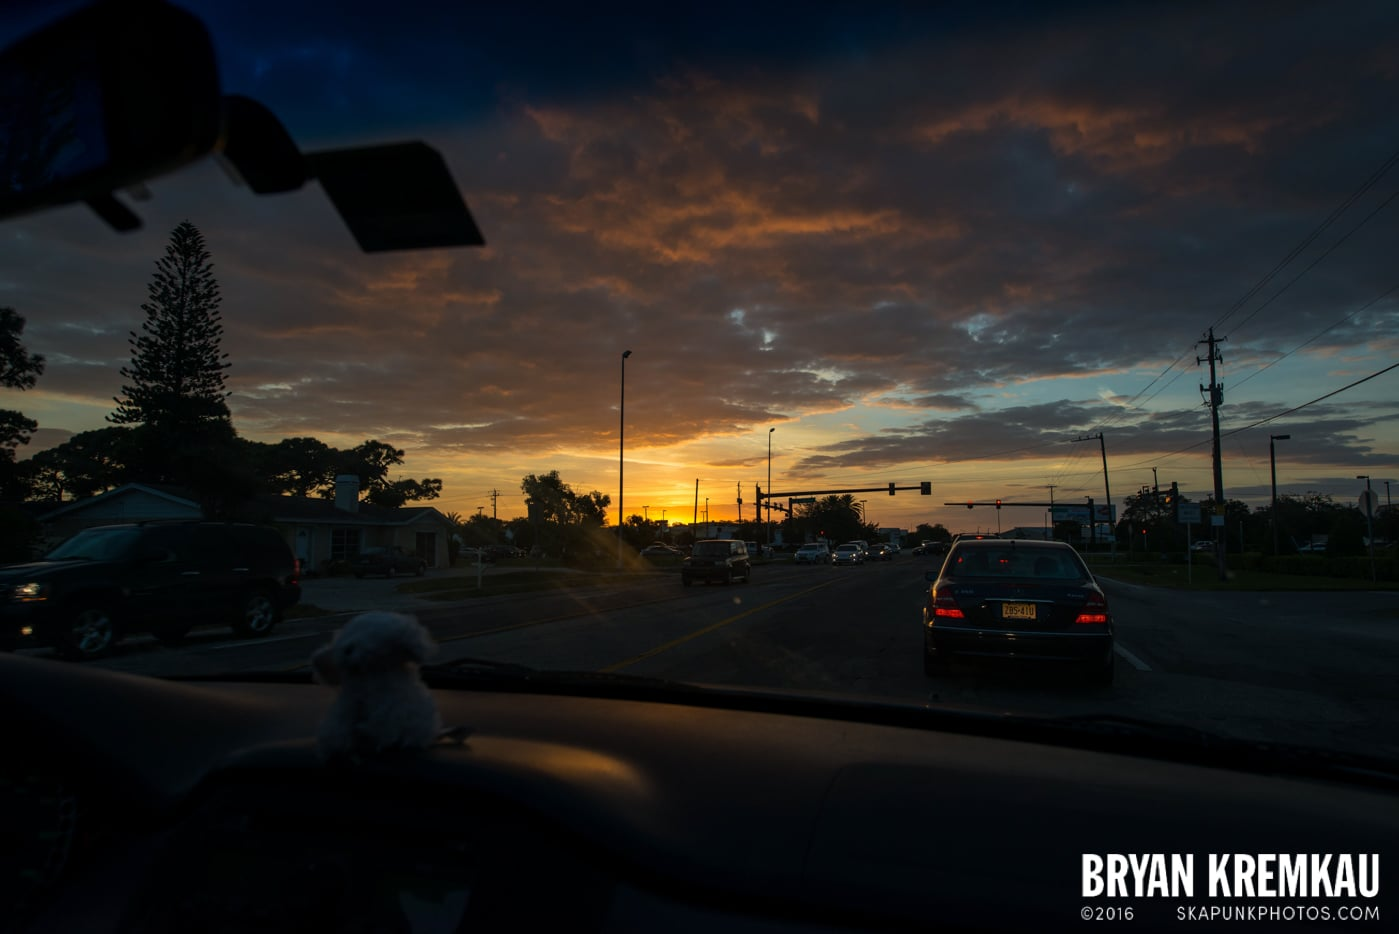 Sunsets, Astrophotography & Birds @ Venice, Florida - 10.25.14 - 11.5.14 (66)